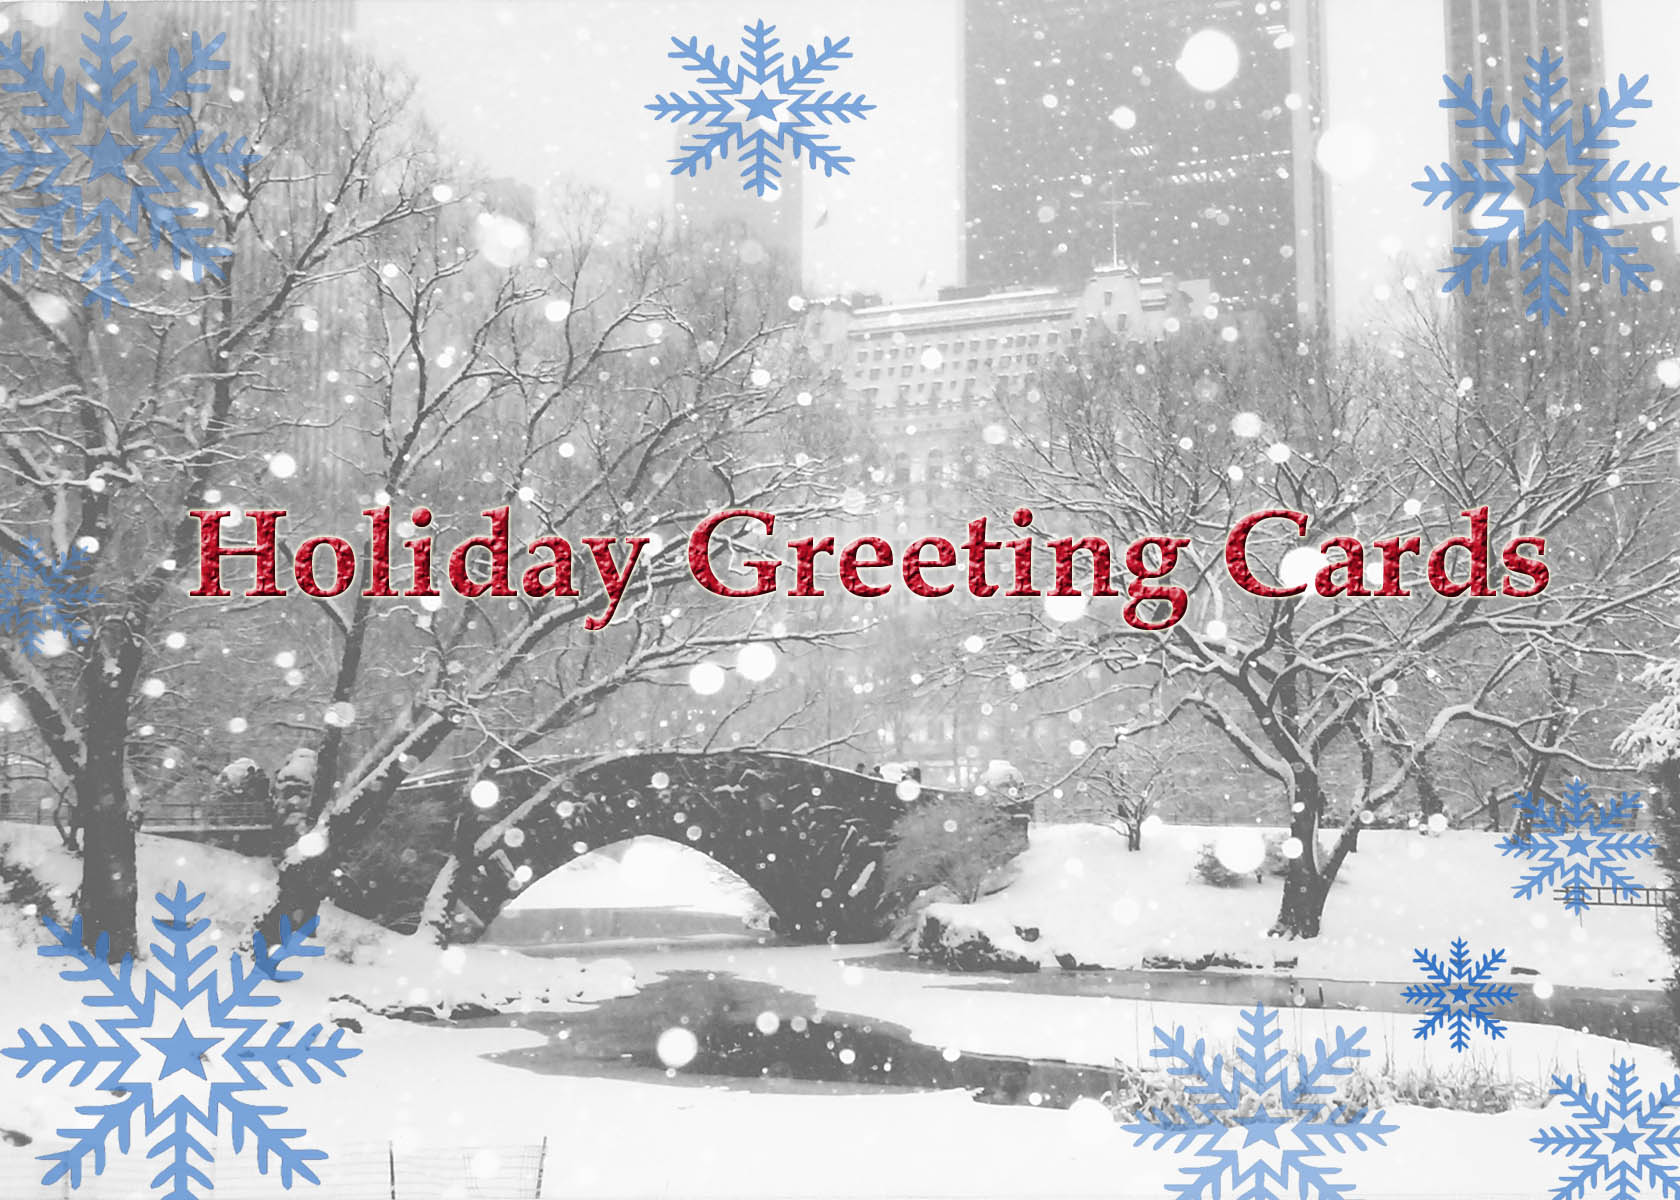 Holiday Greeting Cards Photo Mission Studios